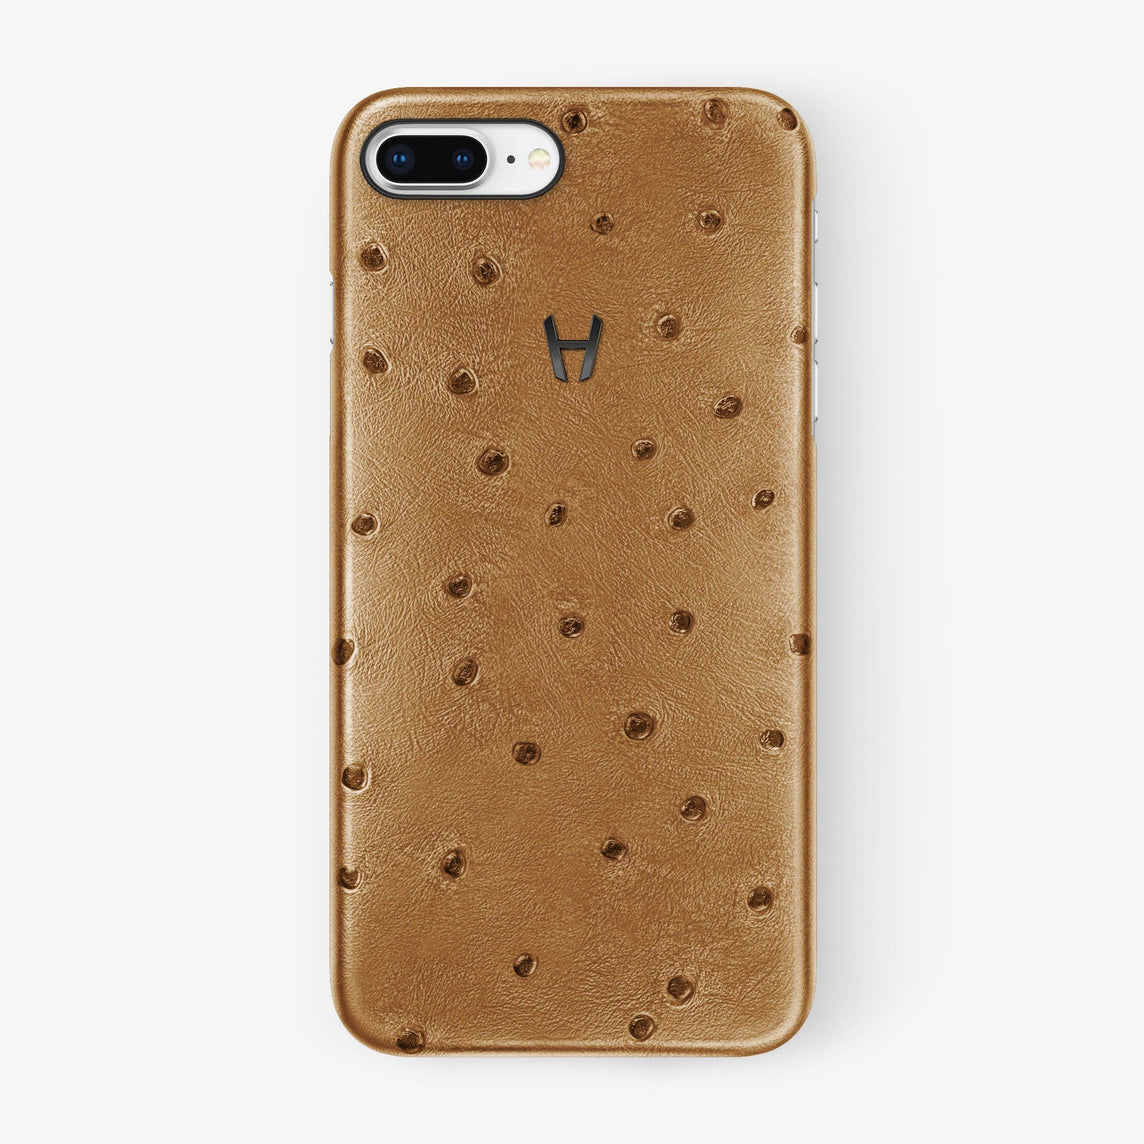 Ostrich Case iPhone 7/8 Plus | Chestnut - Black without-personalization